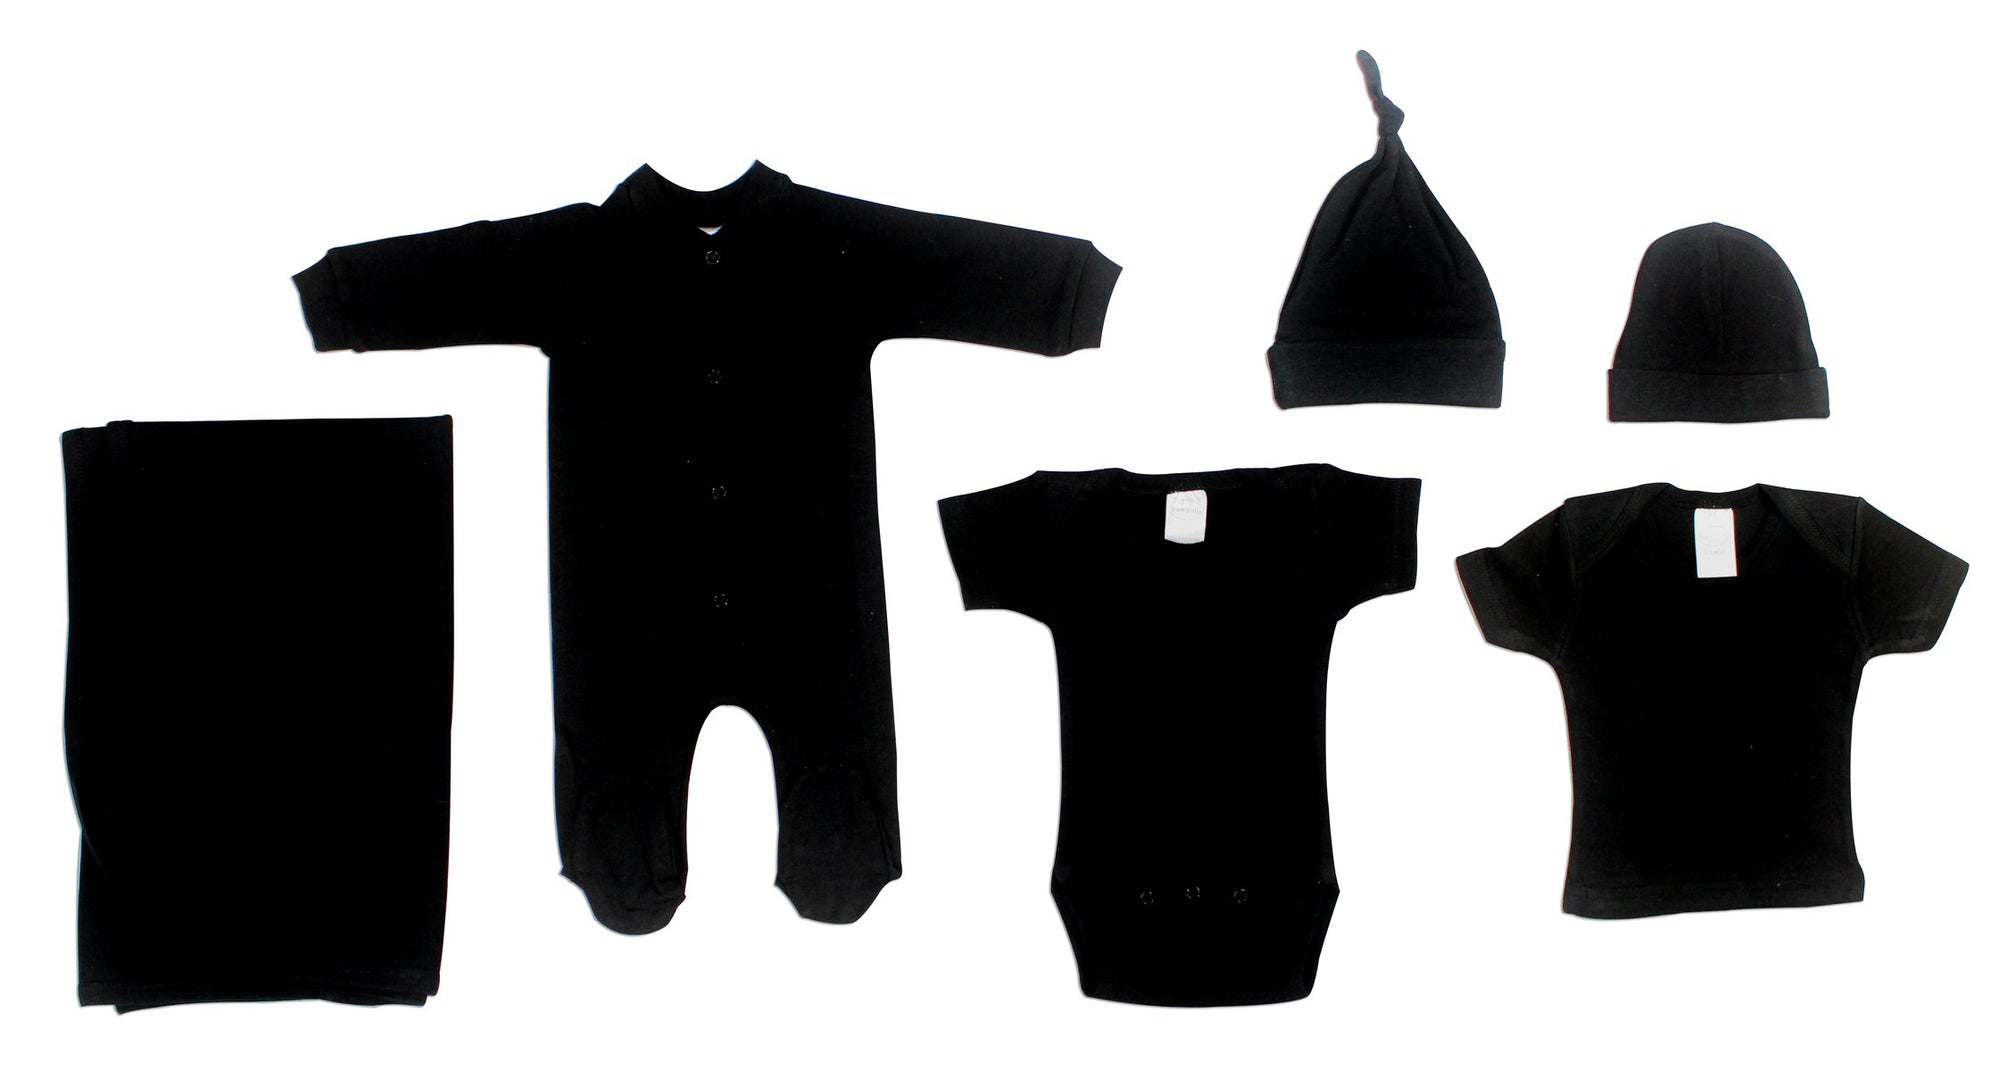 Bambini Black 6 Piece Layette Set - Baby World Inc